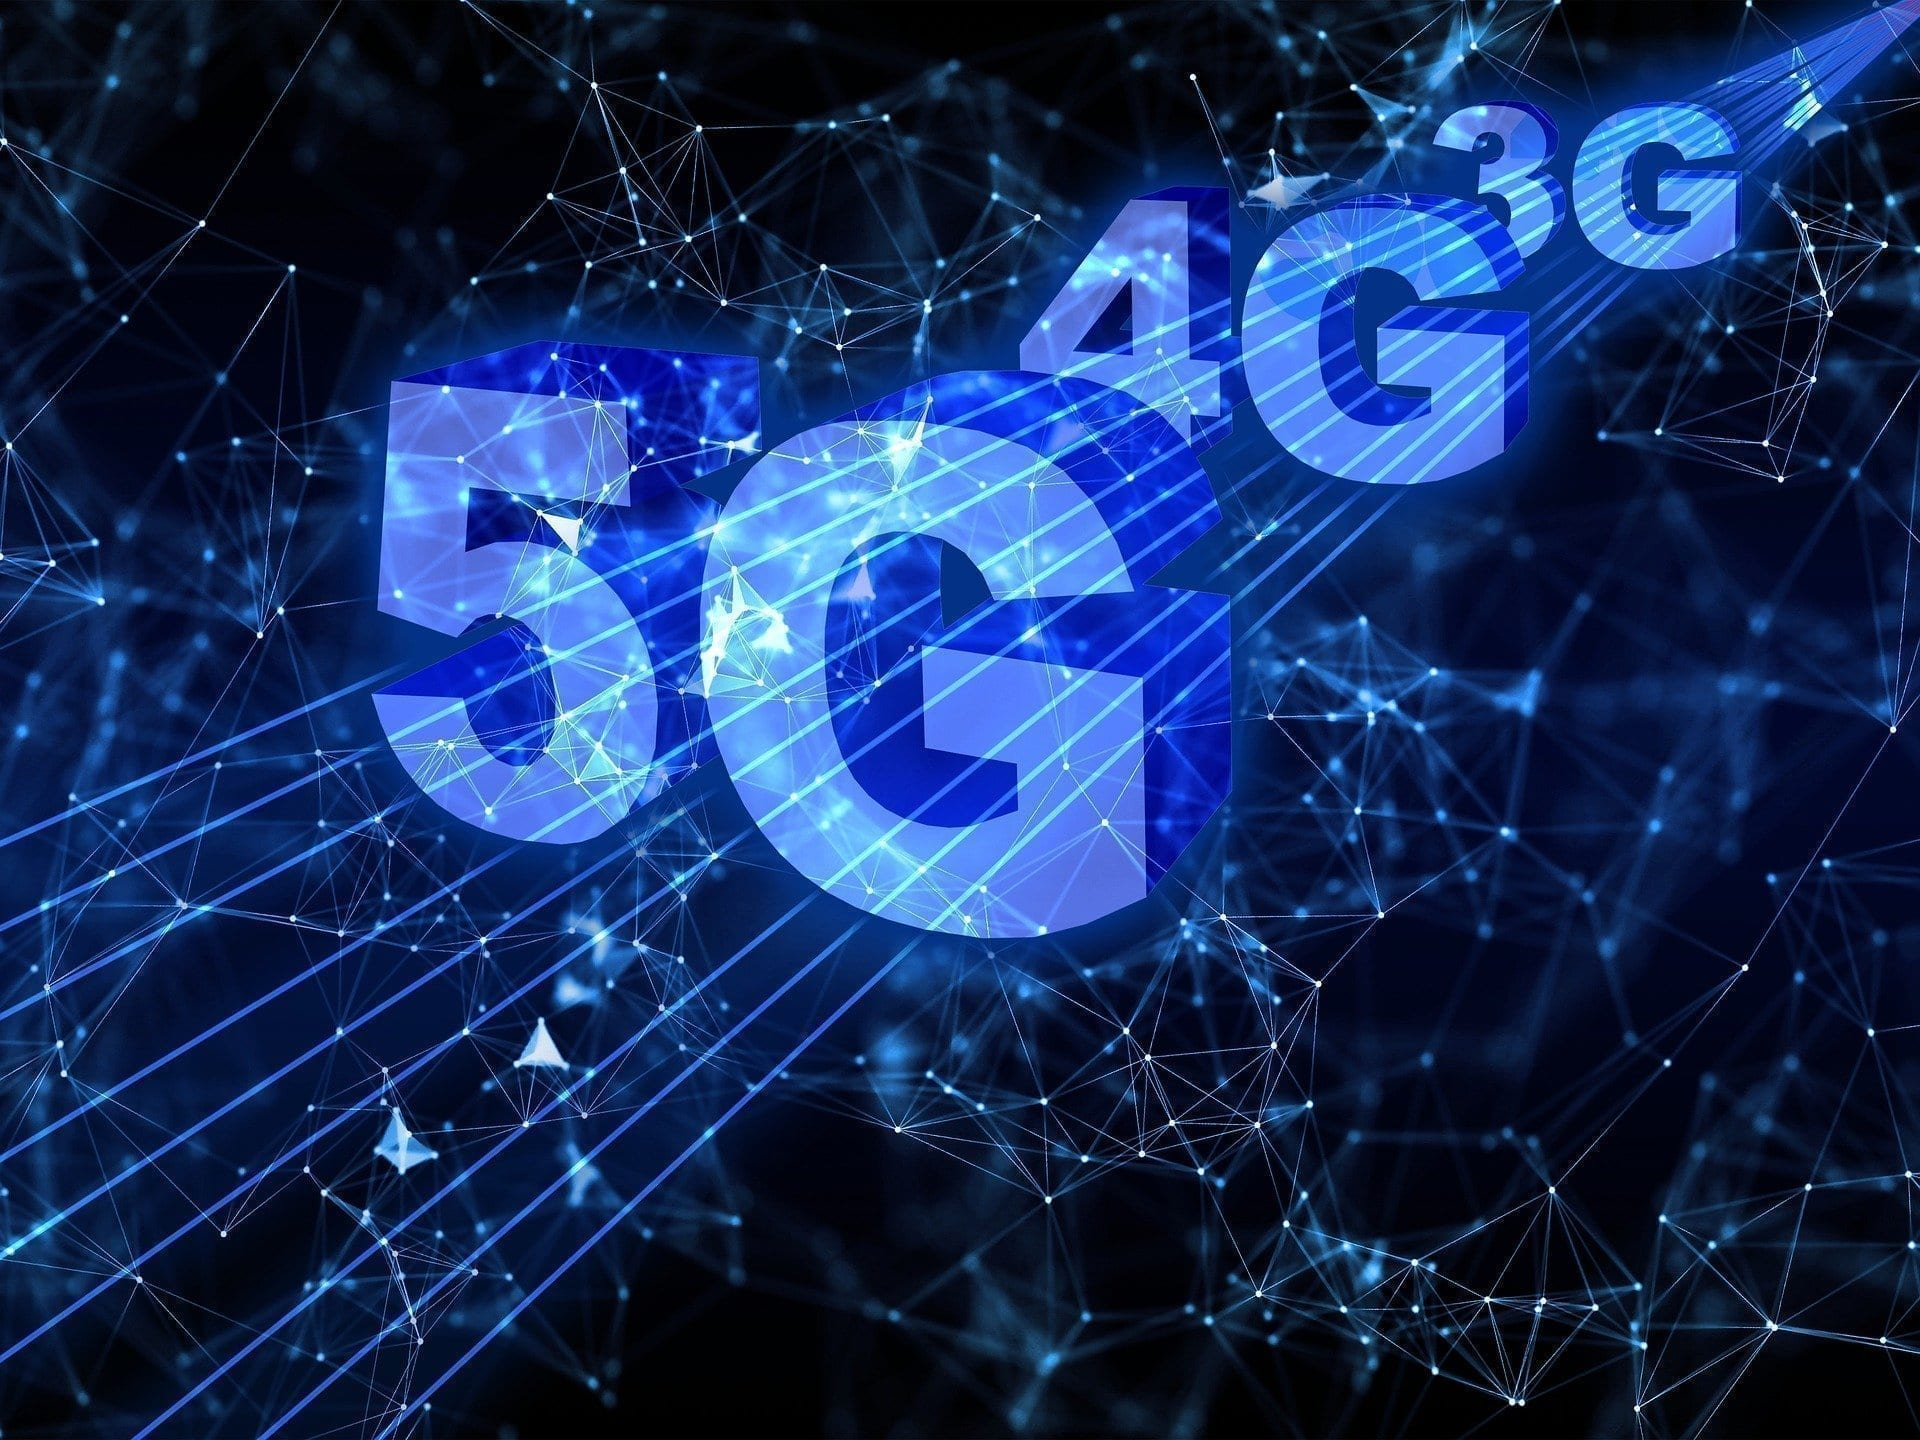 Coronavirus: Scientists brand 5G claims 'complete rubbish'